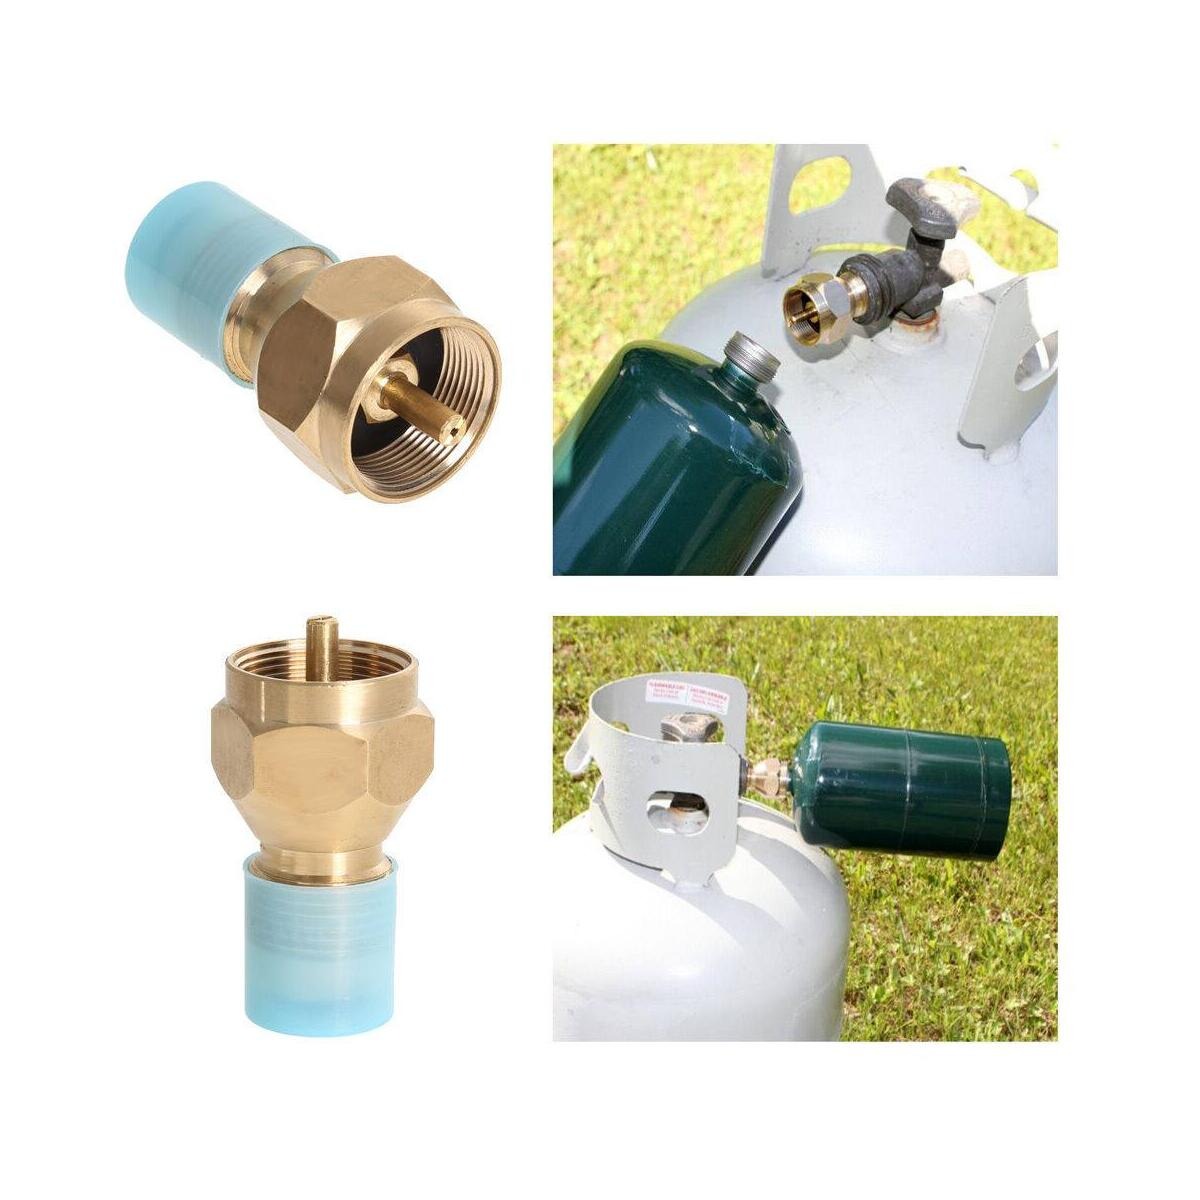 1lb Propane Disposable Tank Refill Adapter - Universal Connection with 20 lb to 1 lb Propane Cylinder - Solid Brass Valve with Protection